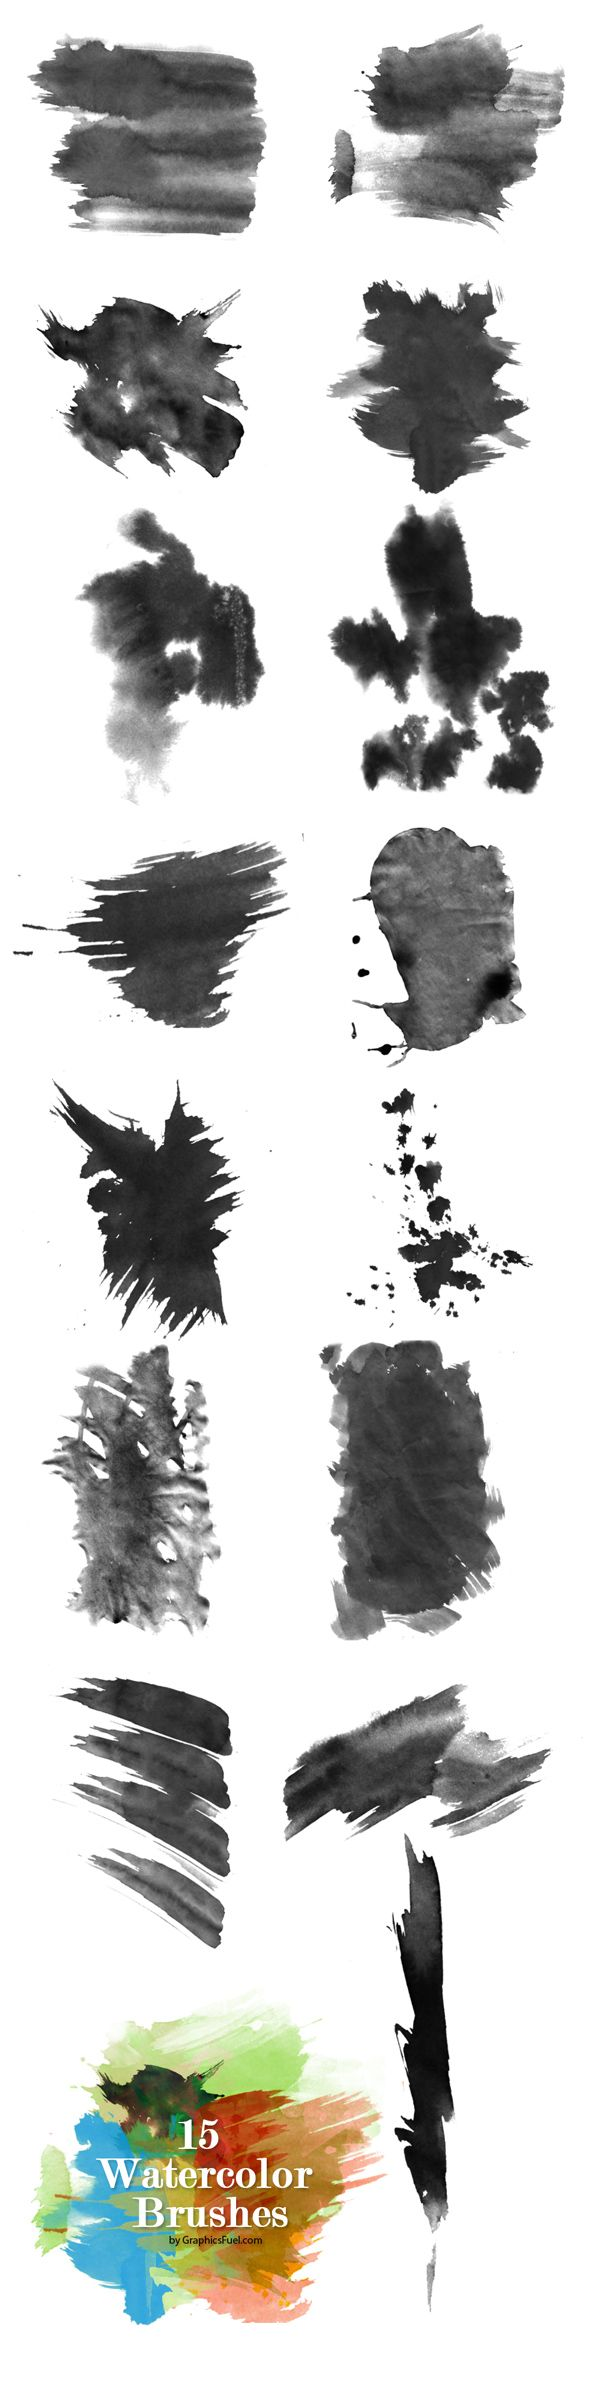 Watercolor Brushes Preview                                                                                                                                                                                 More